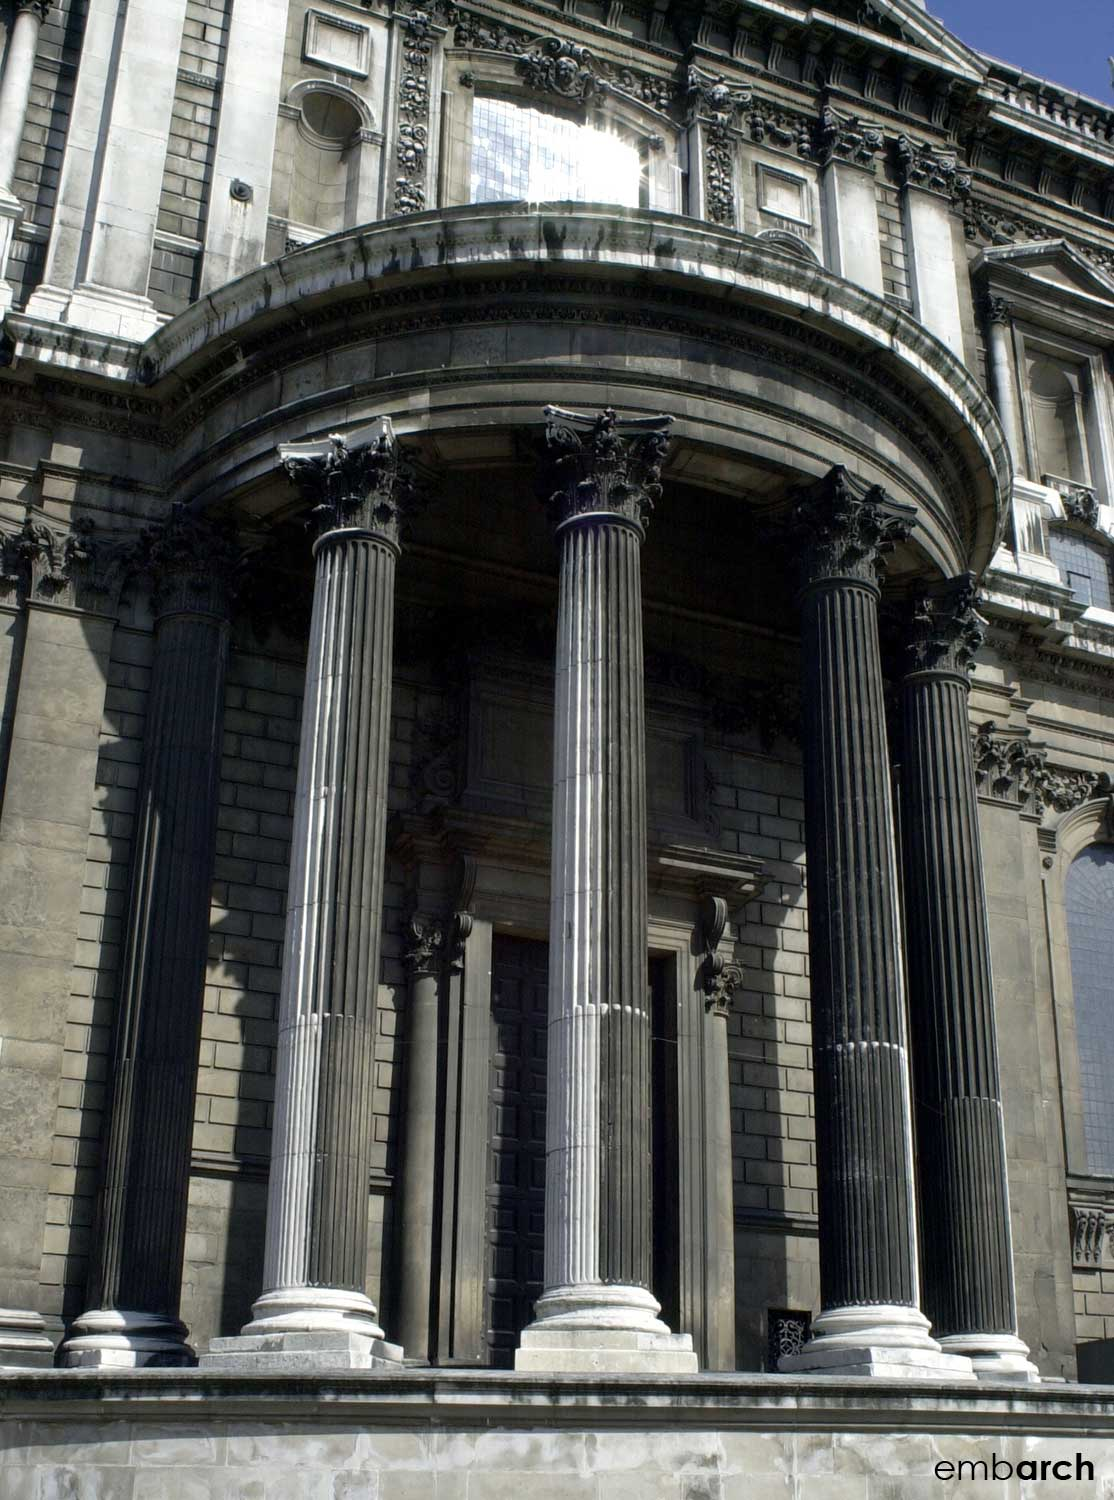 St. Paul's Cathedral - facade detail